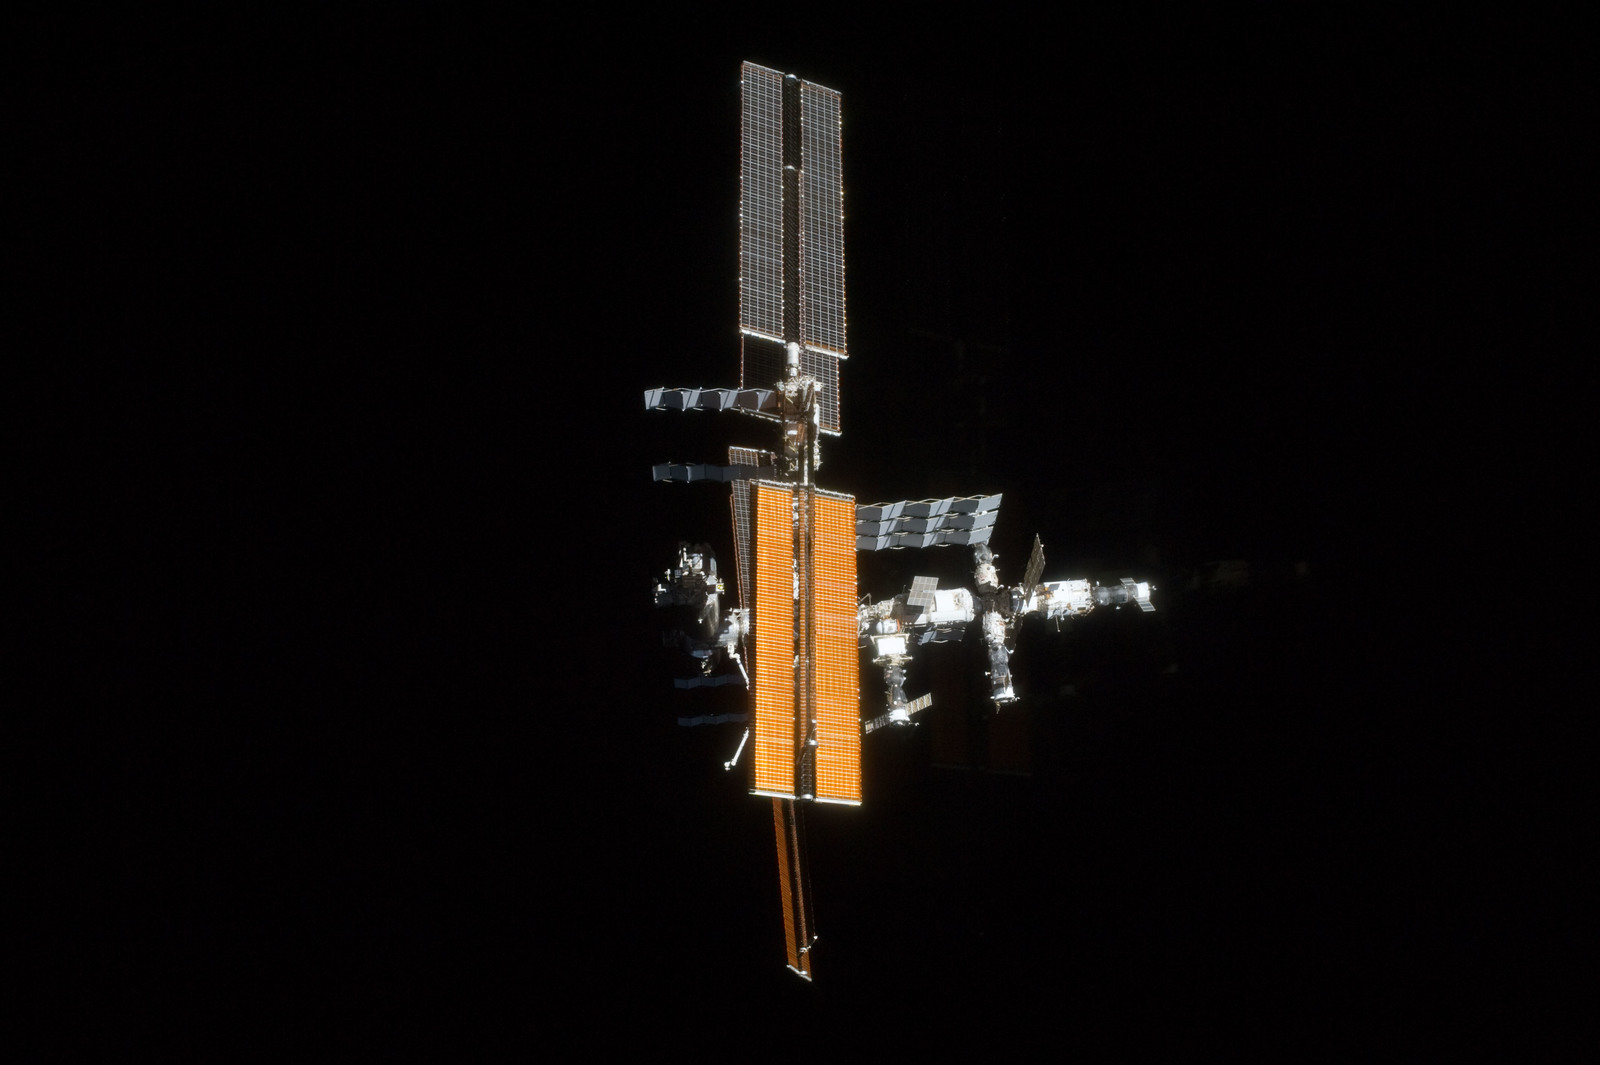 S135E011947 - STS-135 - Flyaround View of ISS